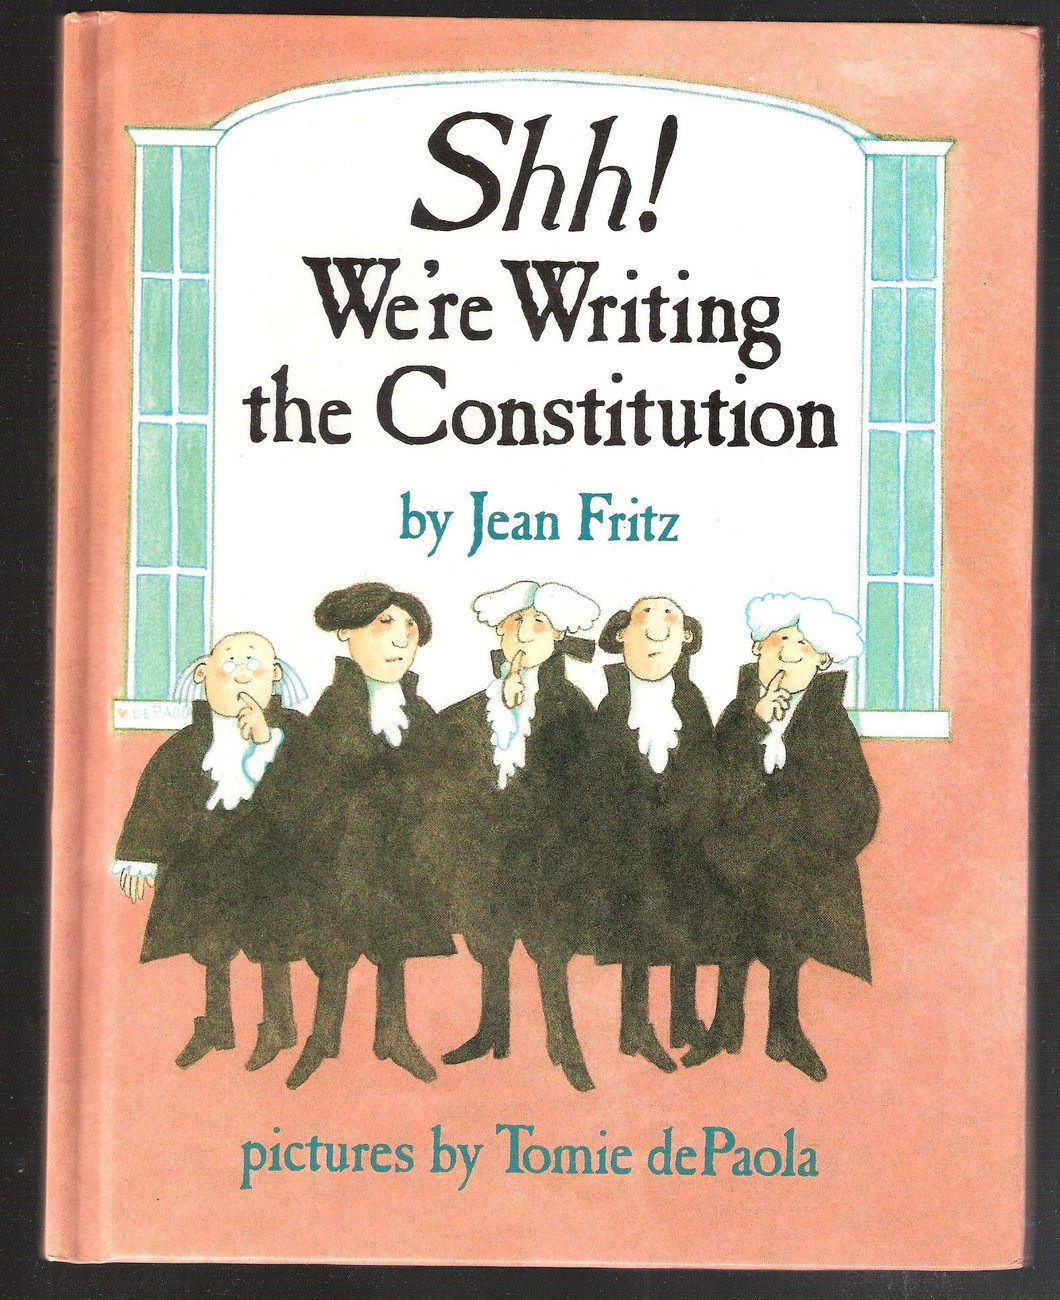 Shh! We're Writing the Constitution by Jean Fritz~Pics by To